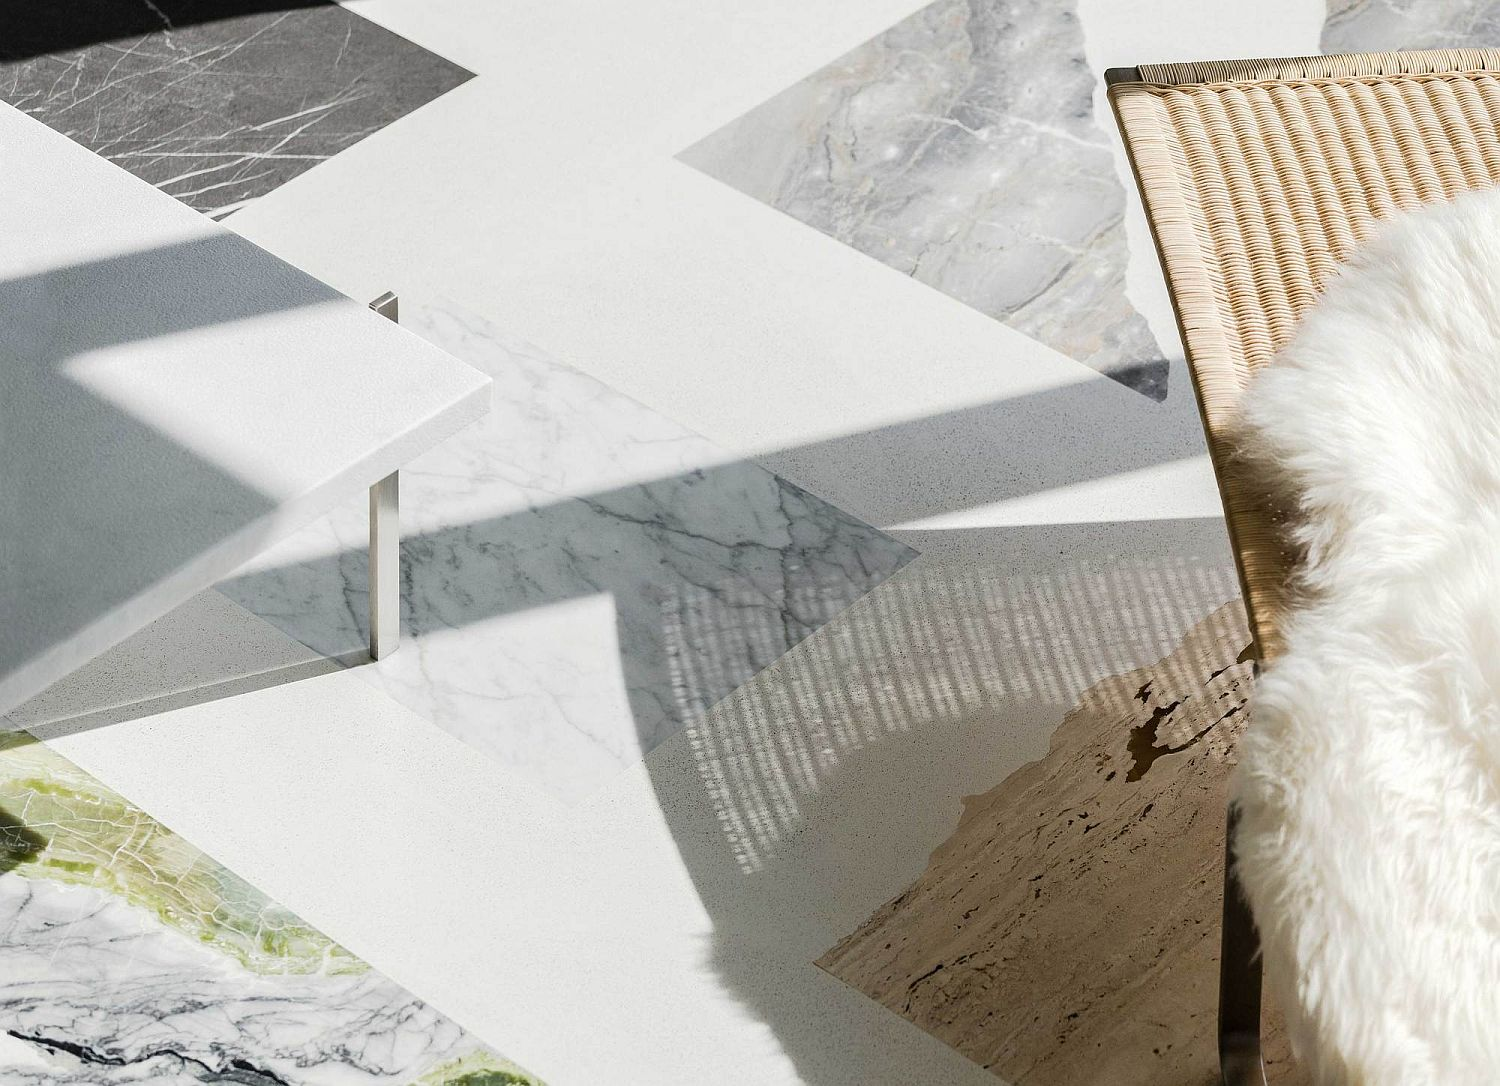 Natural-stone-tiles-create-a-smart-floor-that-looks-like-collage-of-various-pieces